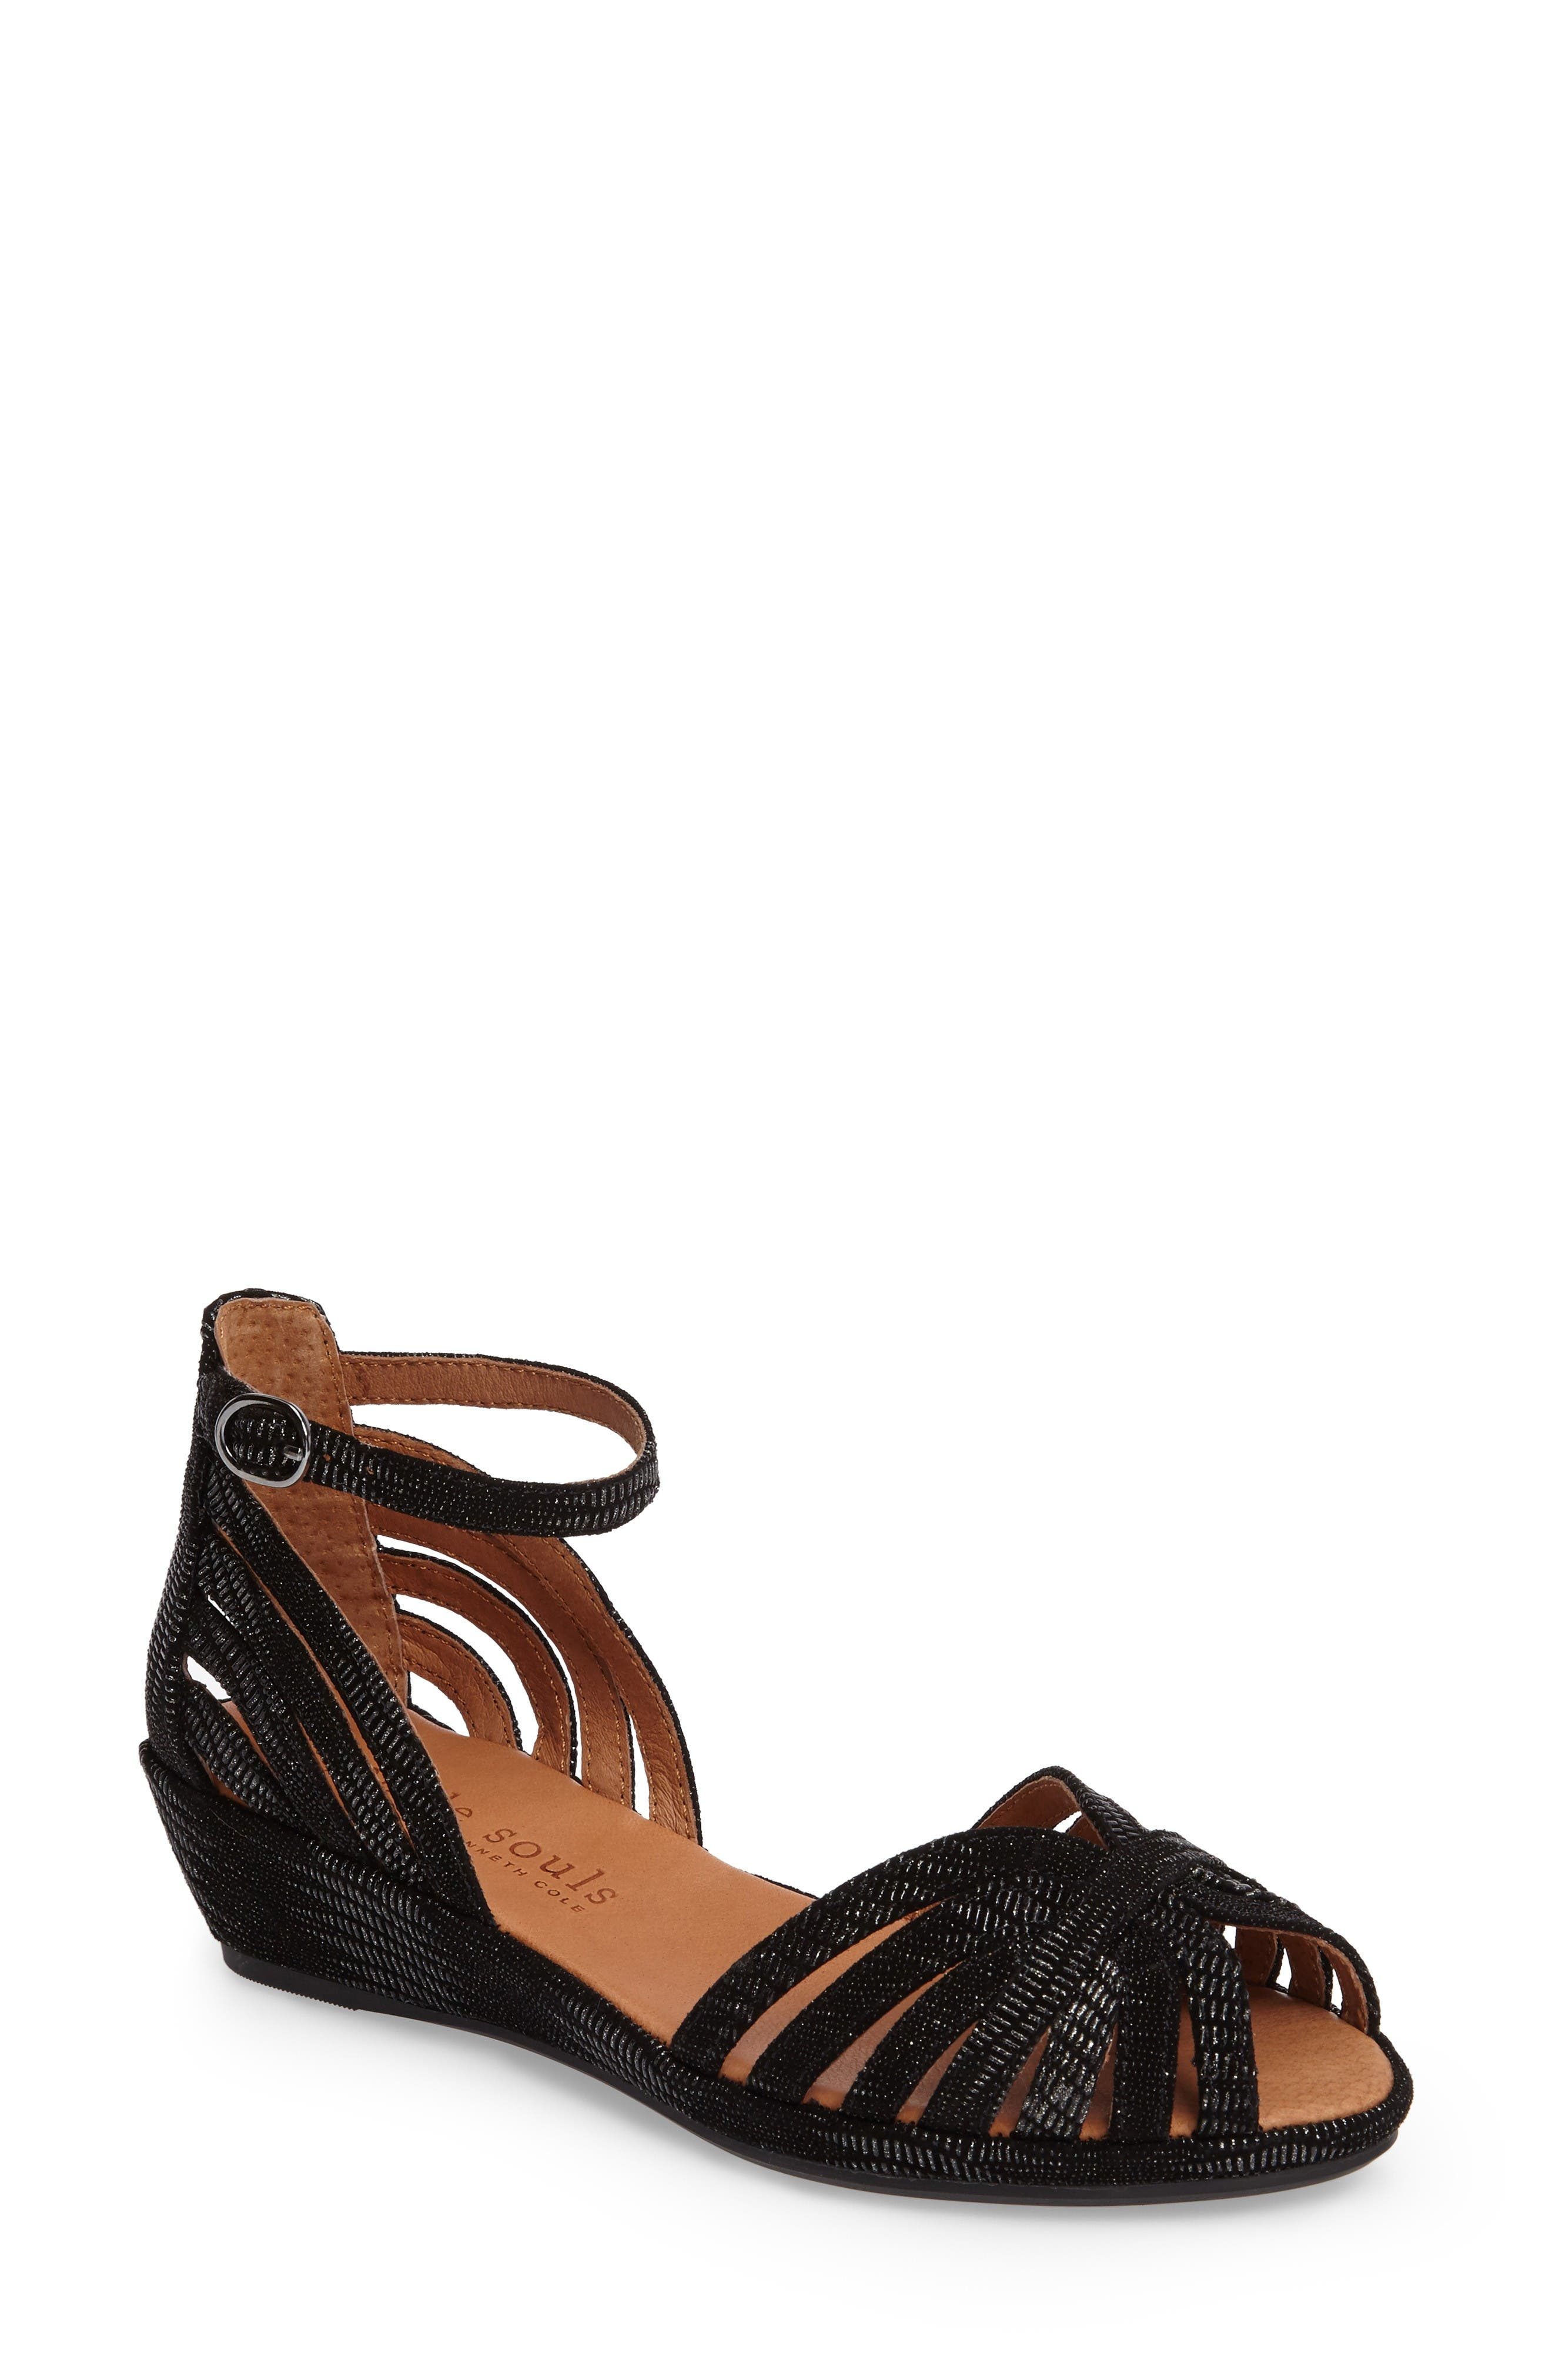 Gentle Souls 'Leah' Peep Toe Wedge Sandal (Women)